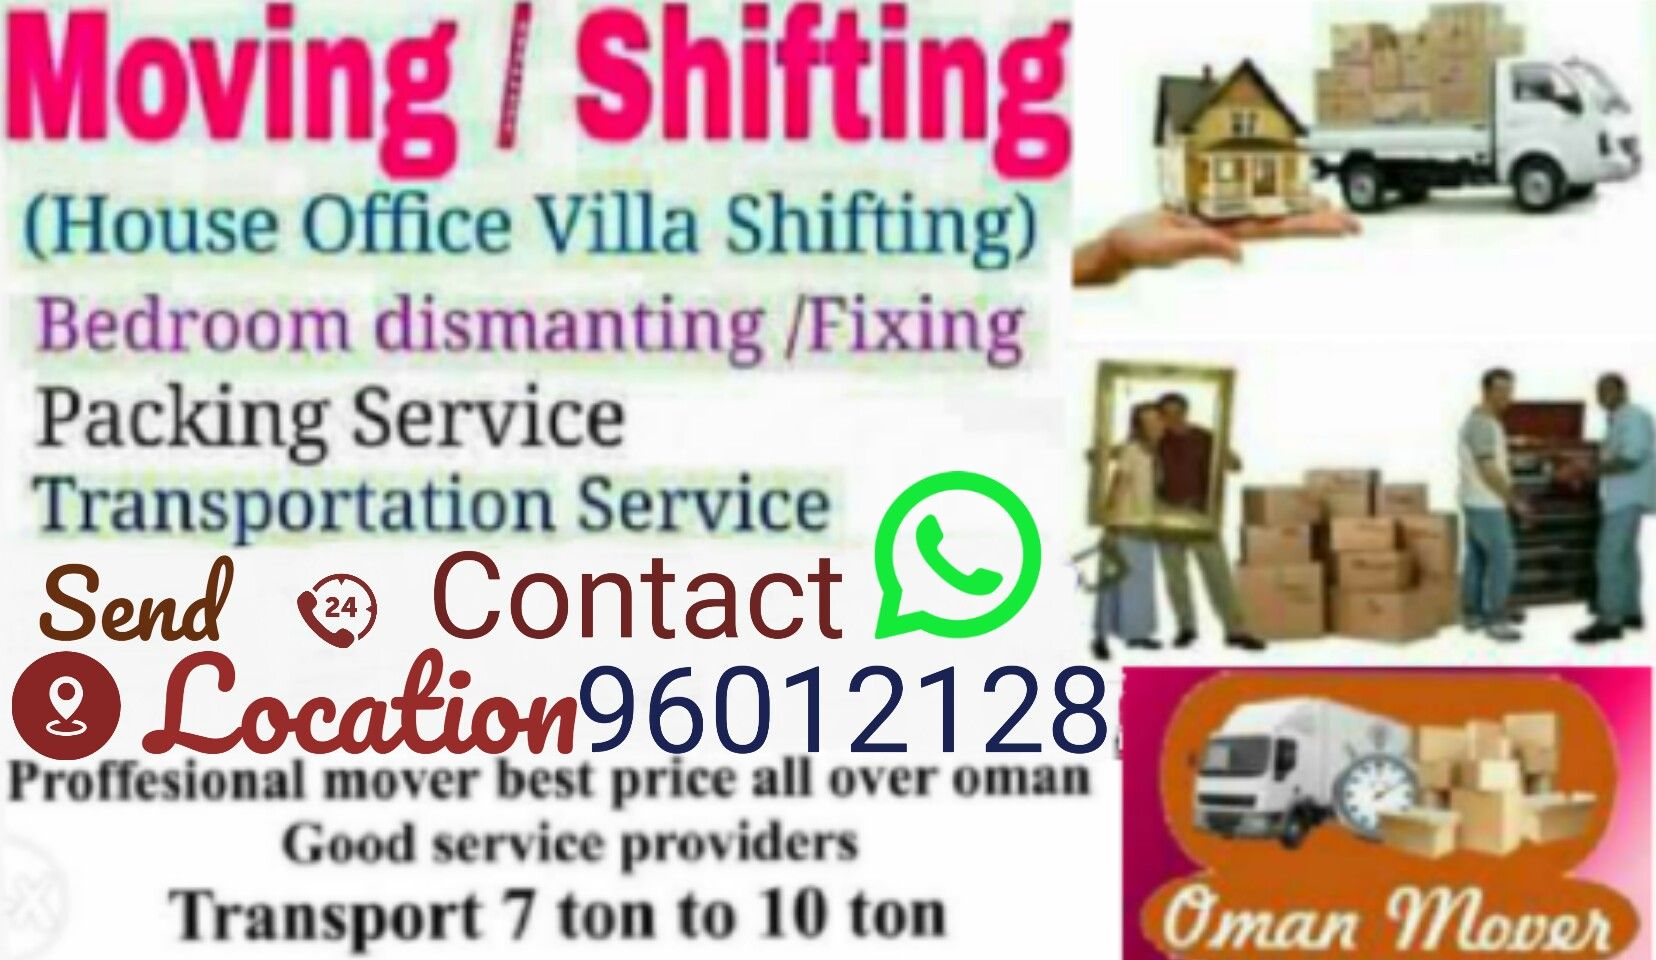 Expert carpentor and packers available for home shiftting